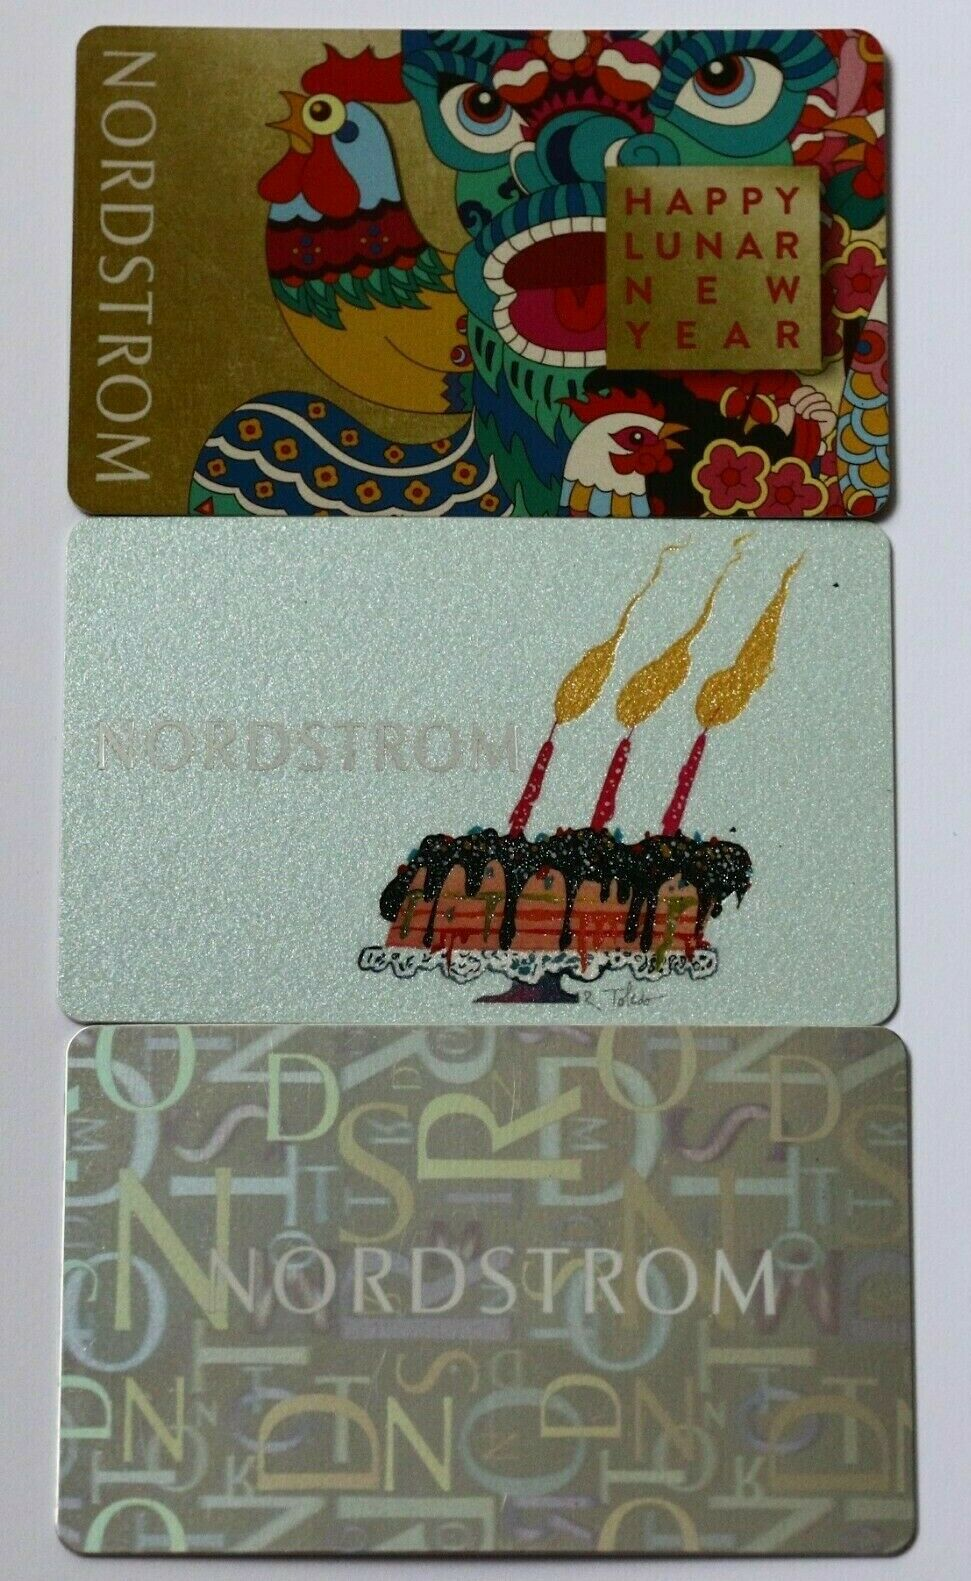 Lot Of 3 Nordstrom Collectible Empty Gift Card No 0 Value Cards - $5.99